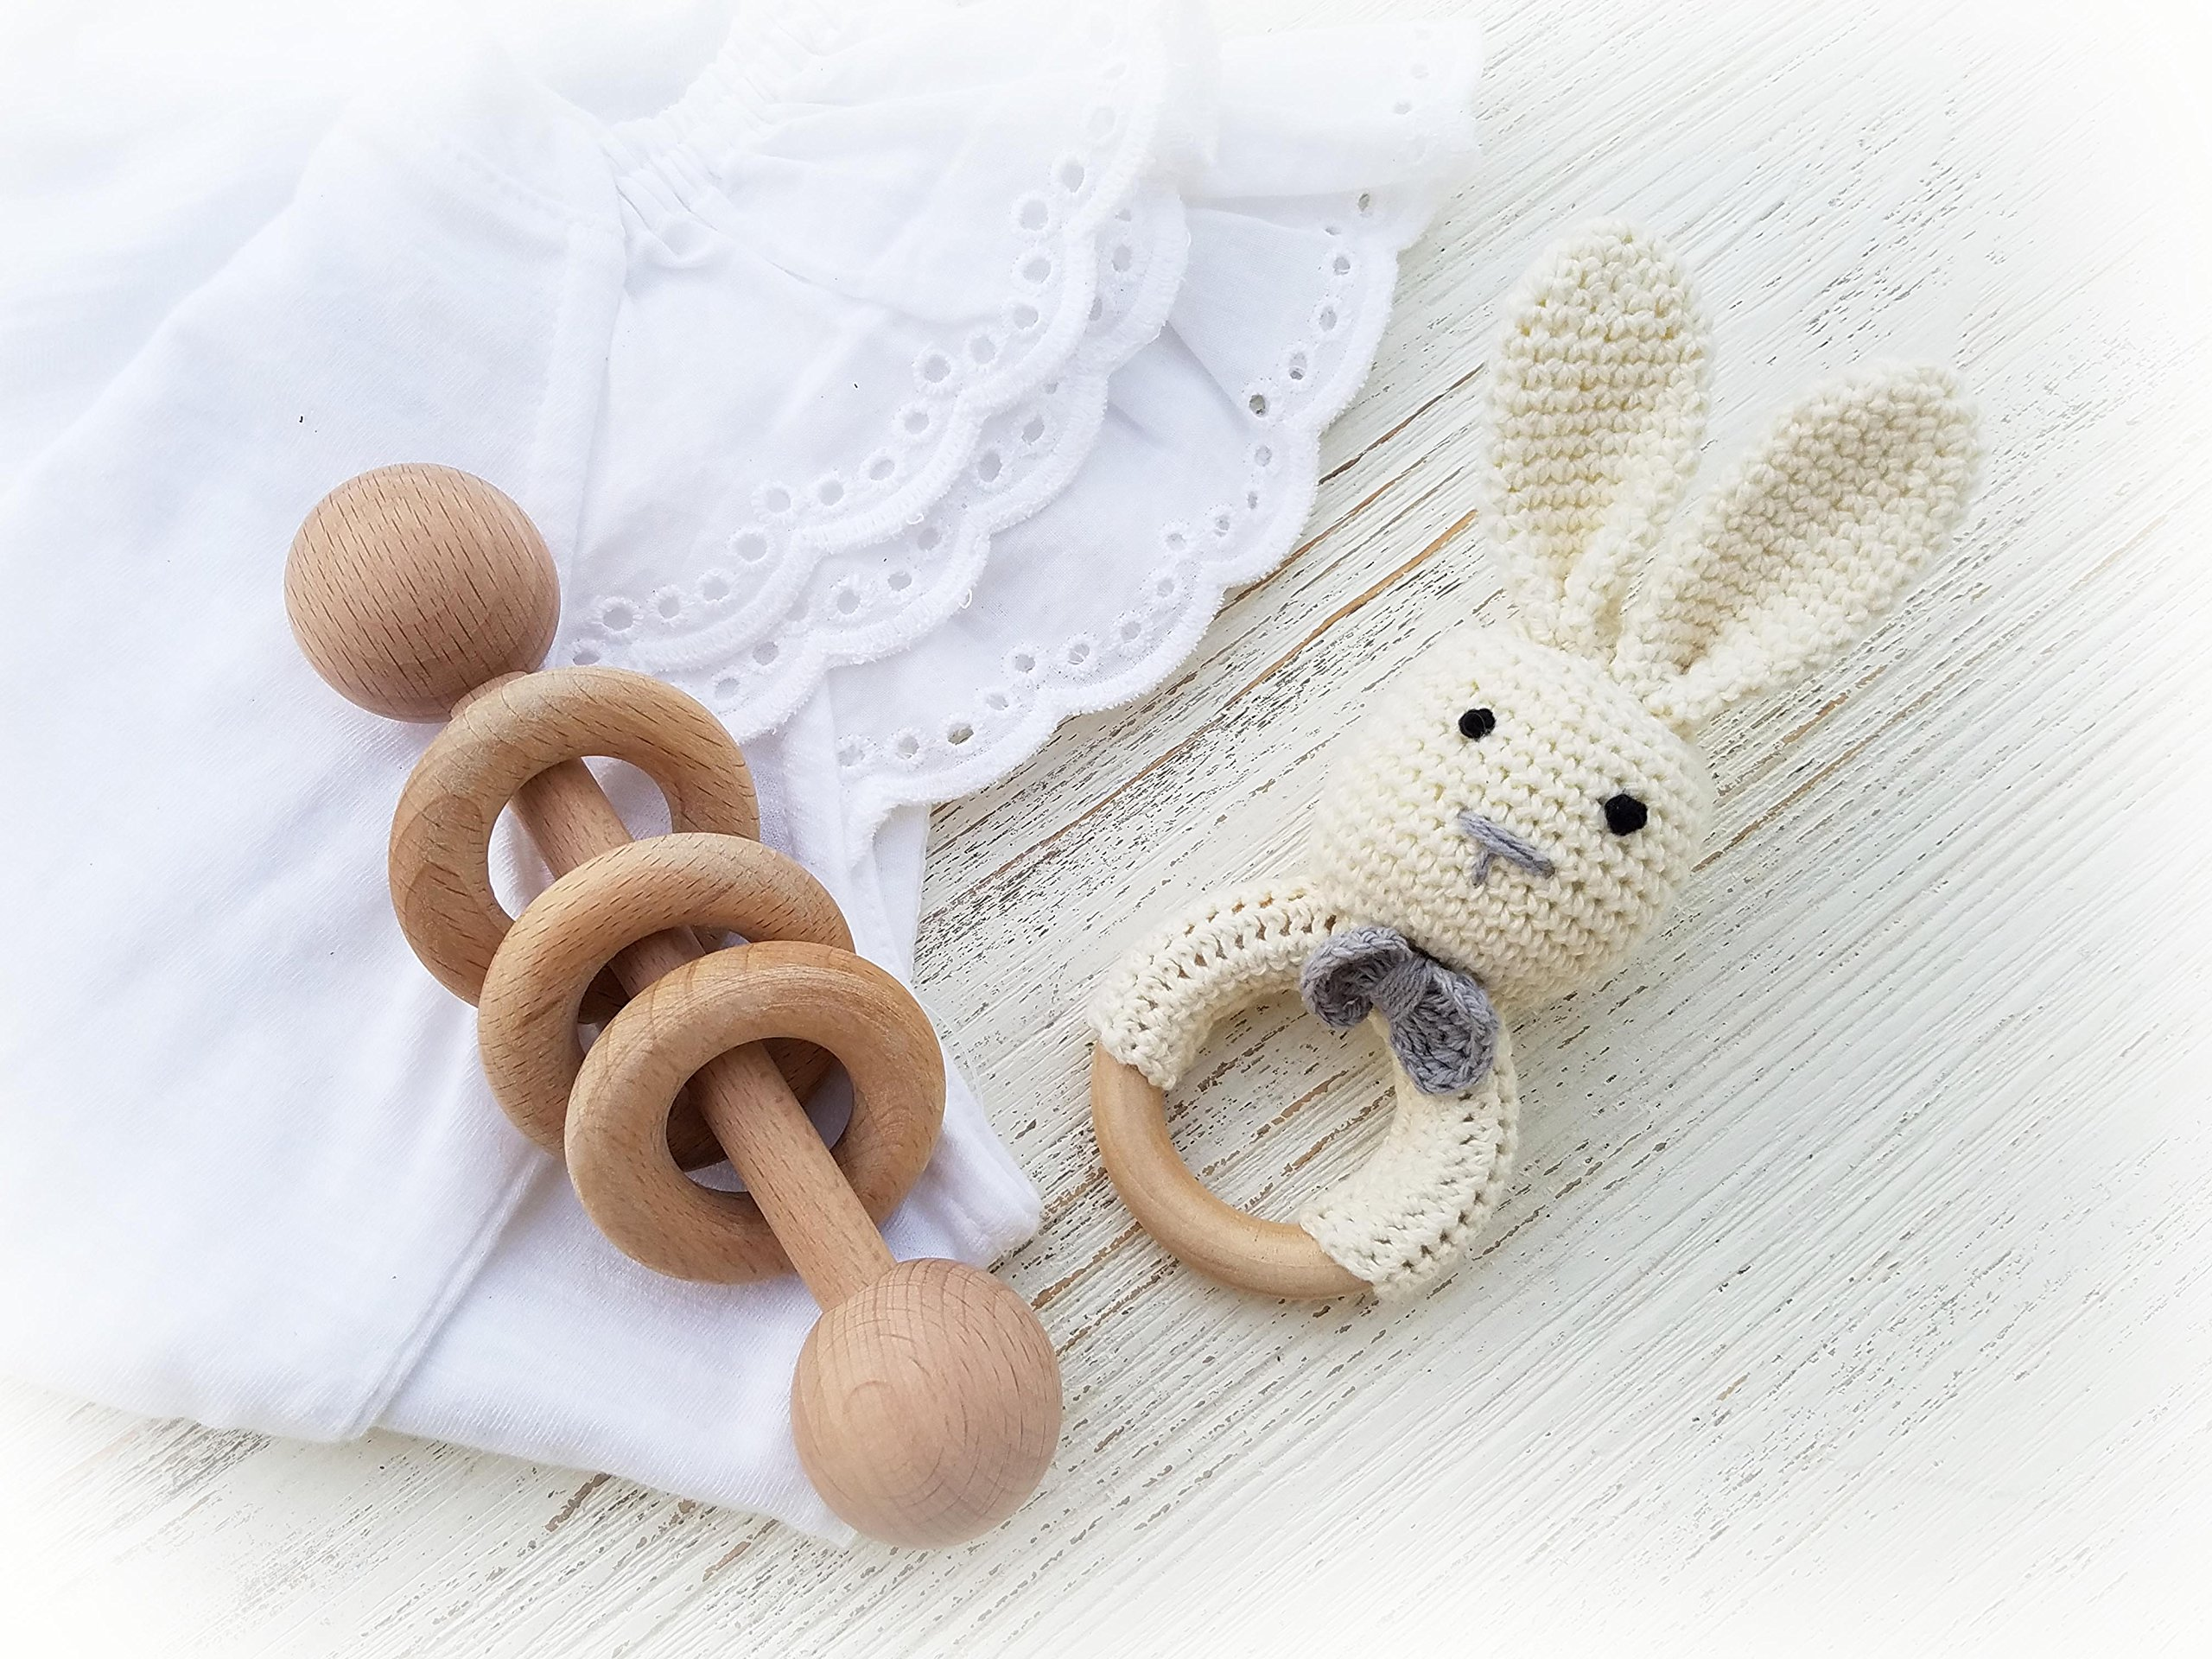 Natural Wooden Baby Toys Baby's First Christmas Toy Cotton Crochet Bunny Teething Ring Teether and Rattle Montessori Inspired Newborn Unisex Baby Shower Gift… (White)